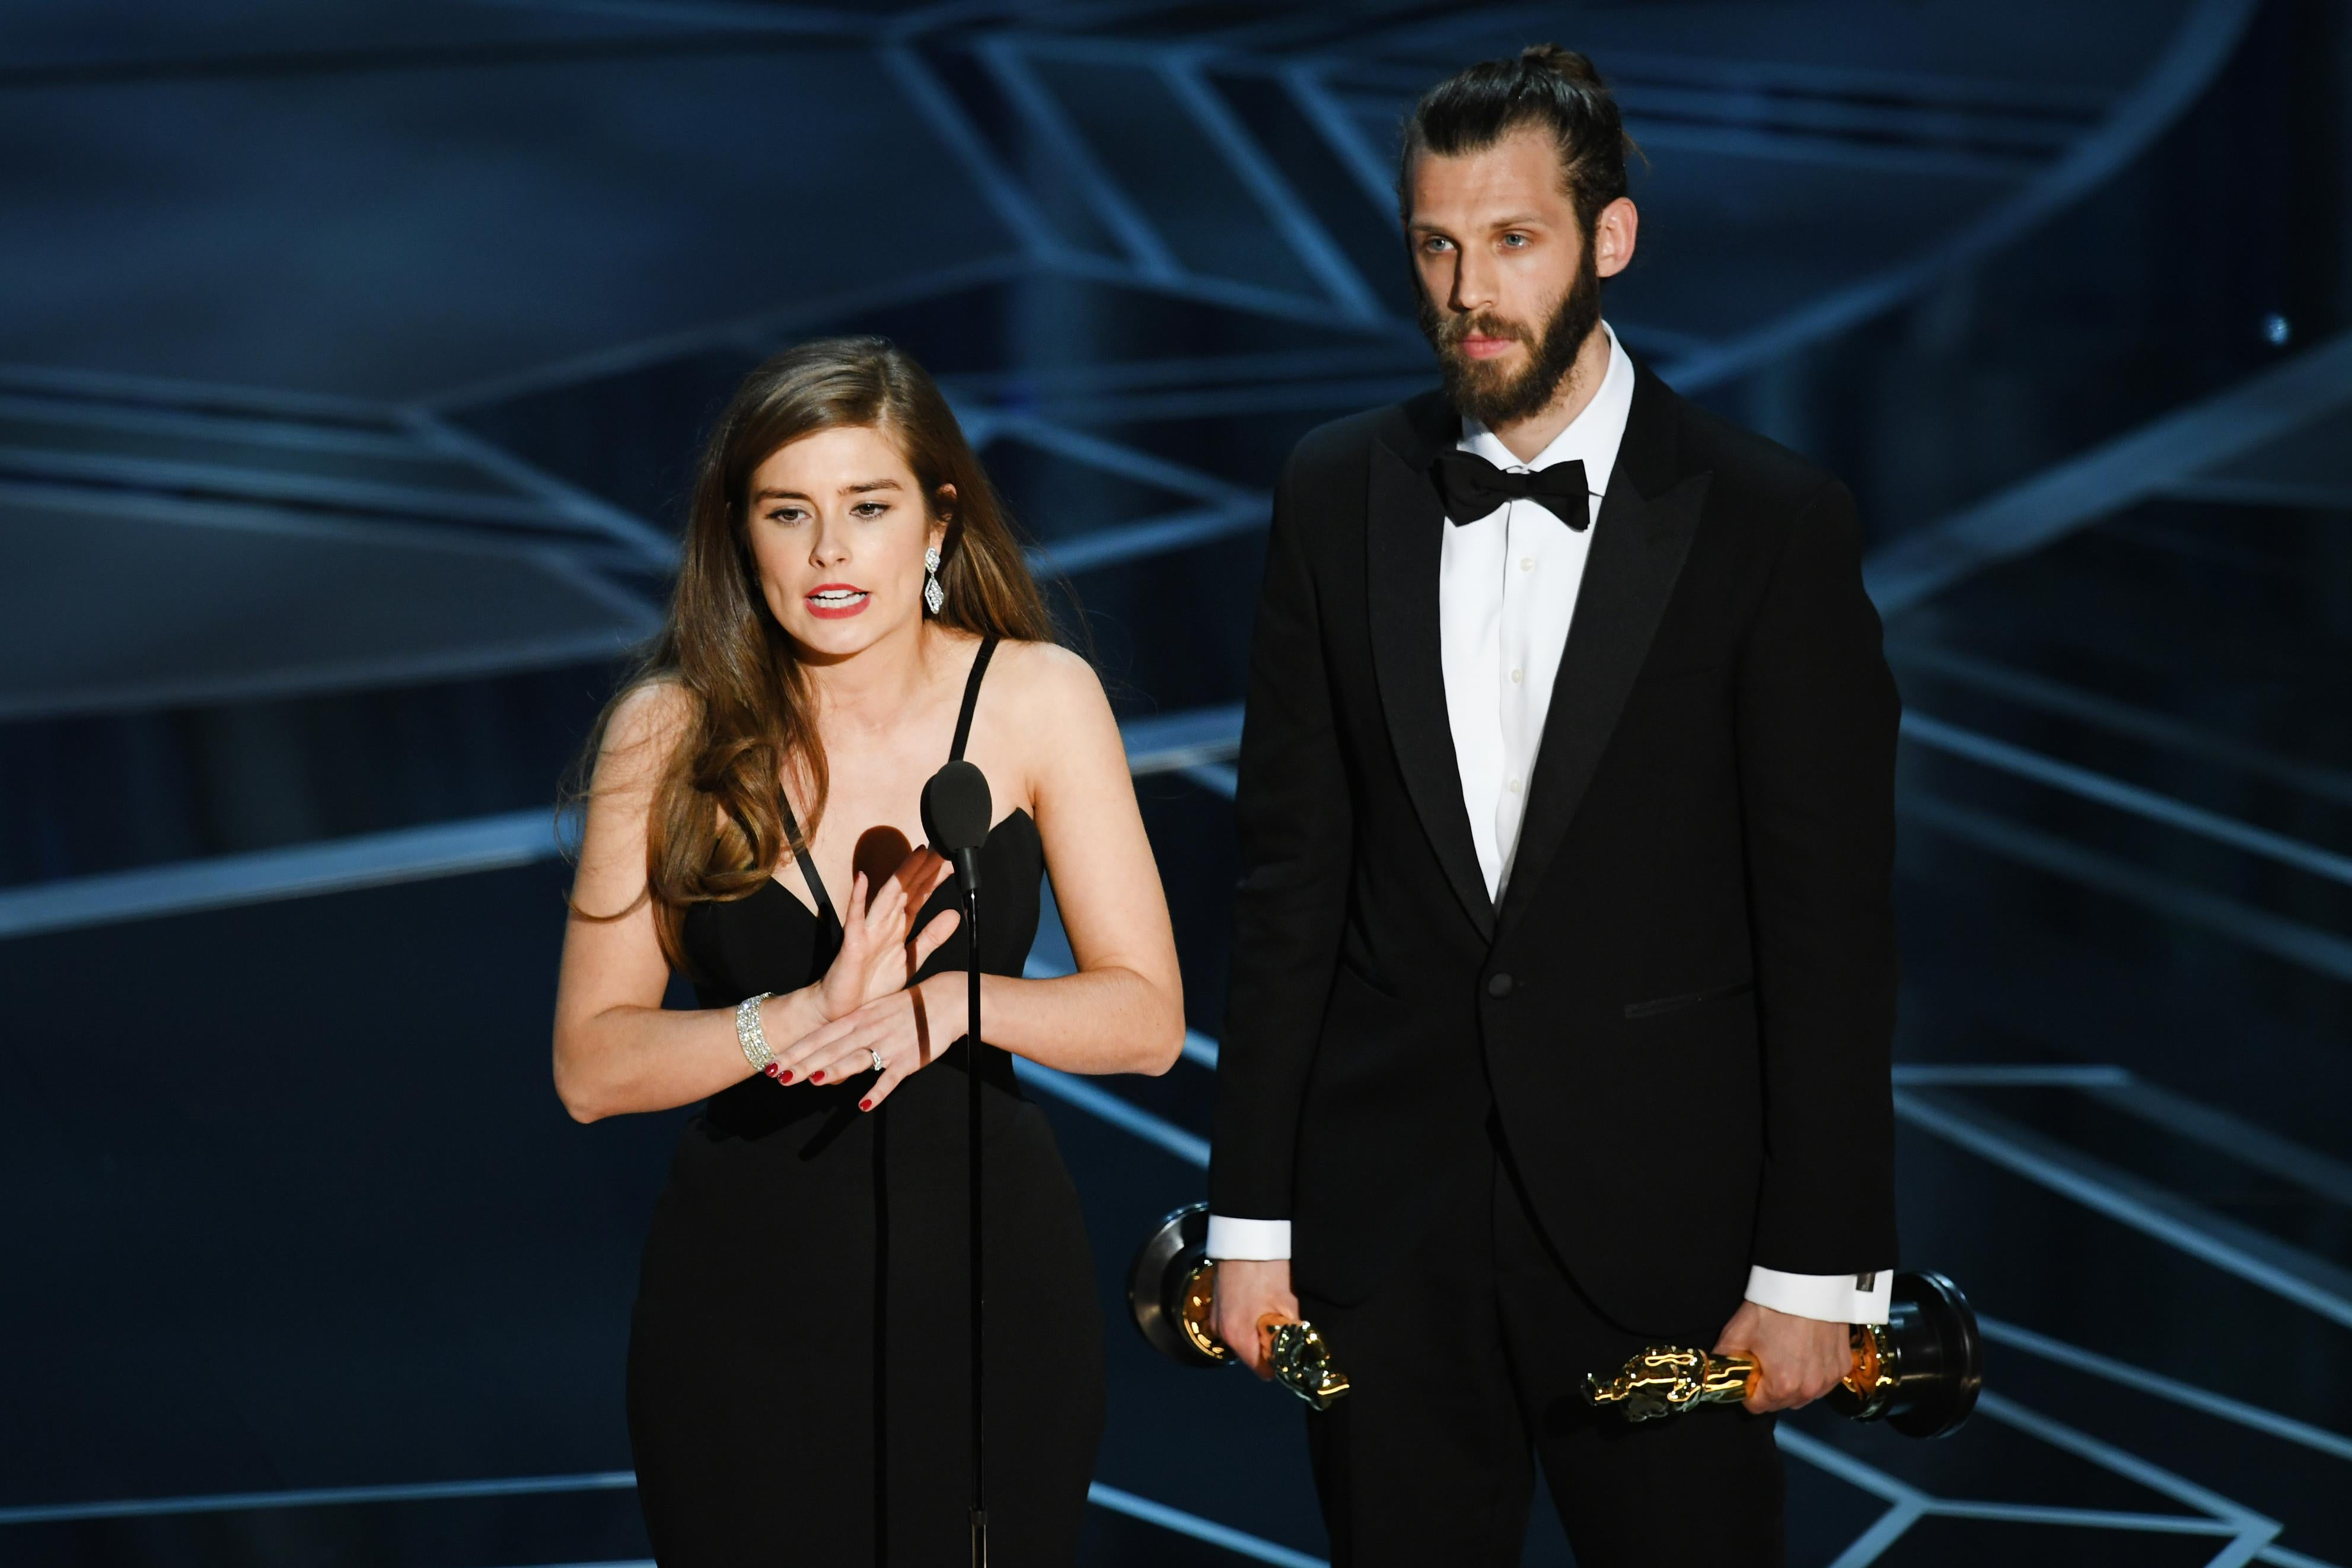 Filmmakers Rachel Shenton (L) and Chris Overton accept Best Live Action Short Film for 'The Silent Child' onstage during the 90th Annual Academy Awards at the Dolby Theatre at Hollywood & Highland Center on March 4, 2018 in Hollywood, California.  (Photo by Kevin Winter/Getty Images)